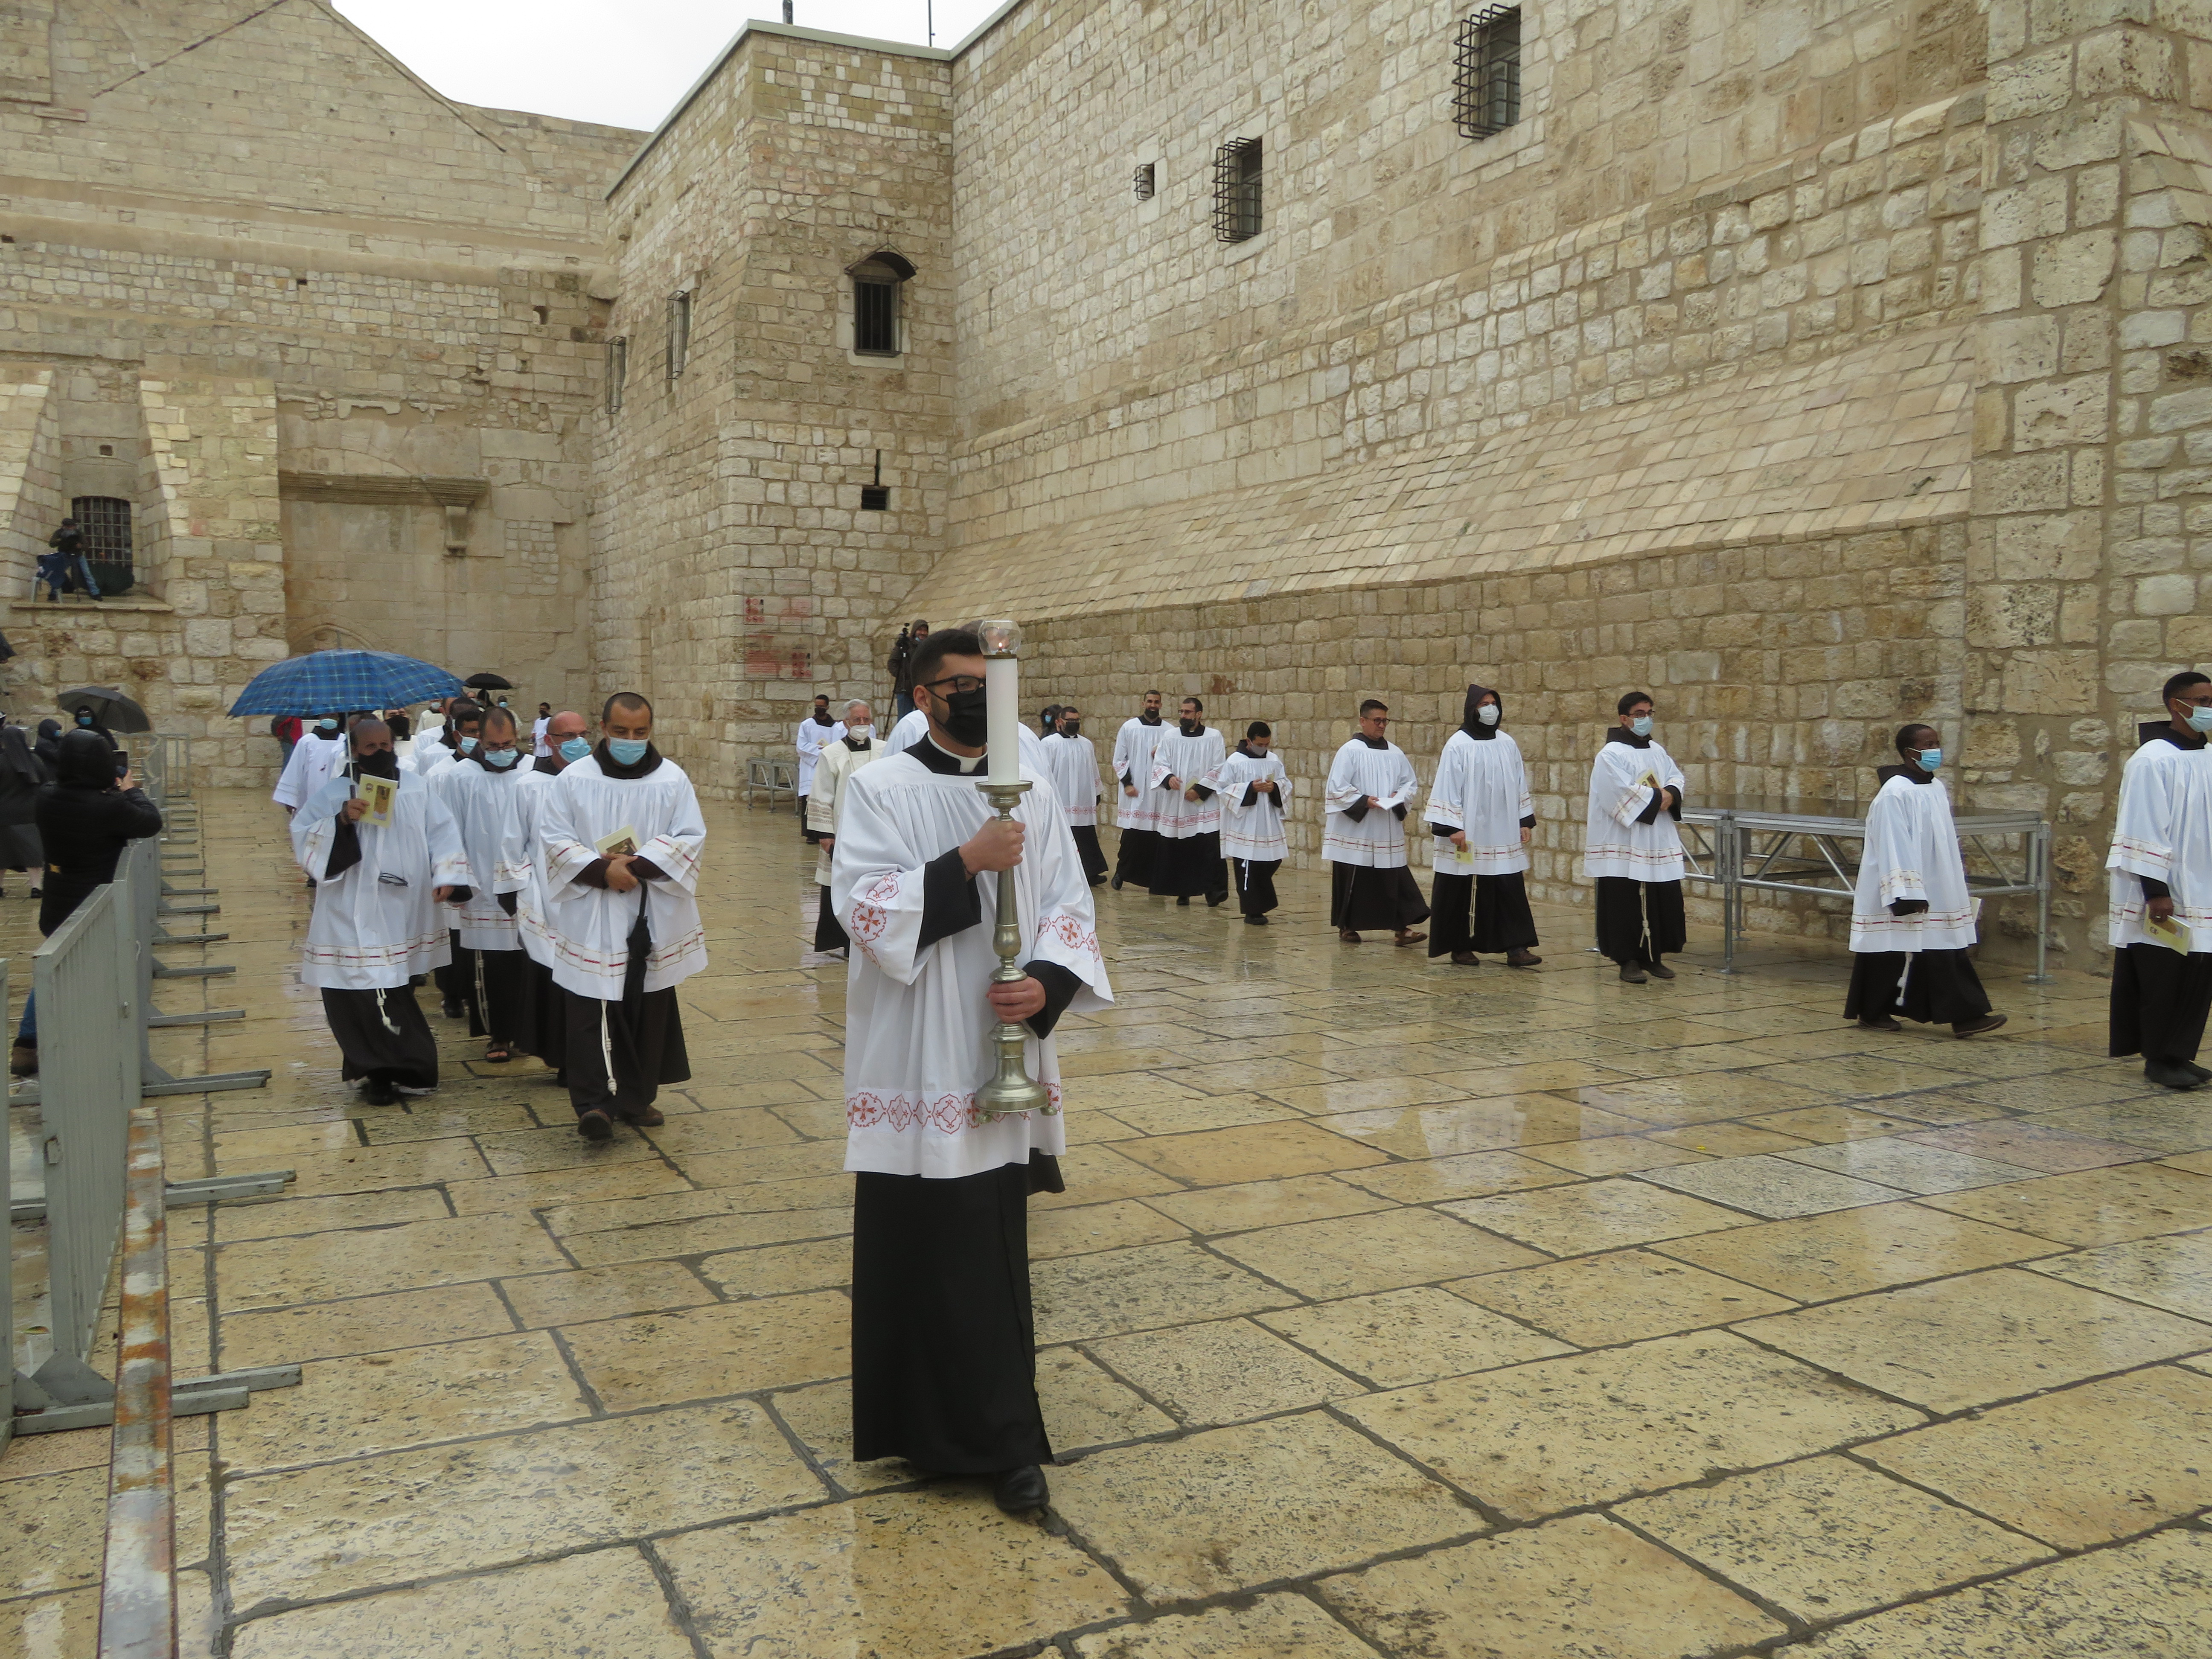 Processing during a pandemic:  Masked Franciscan priests process to Manger Square in Bethlehem on Christmas Eve, 2020.